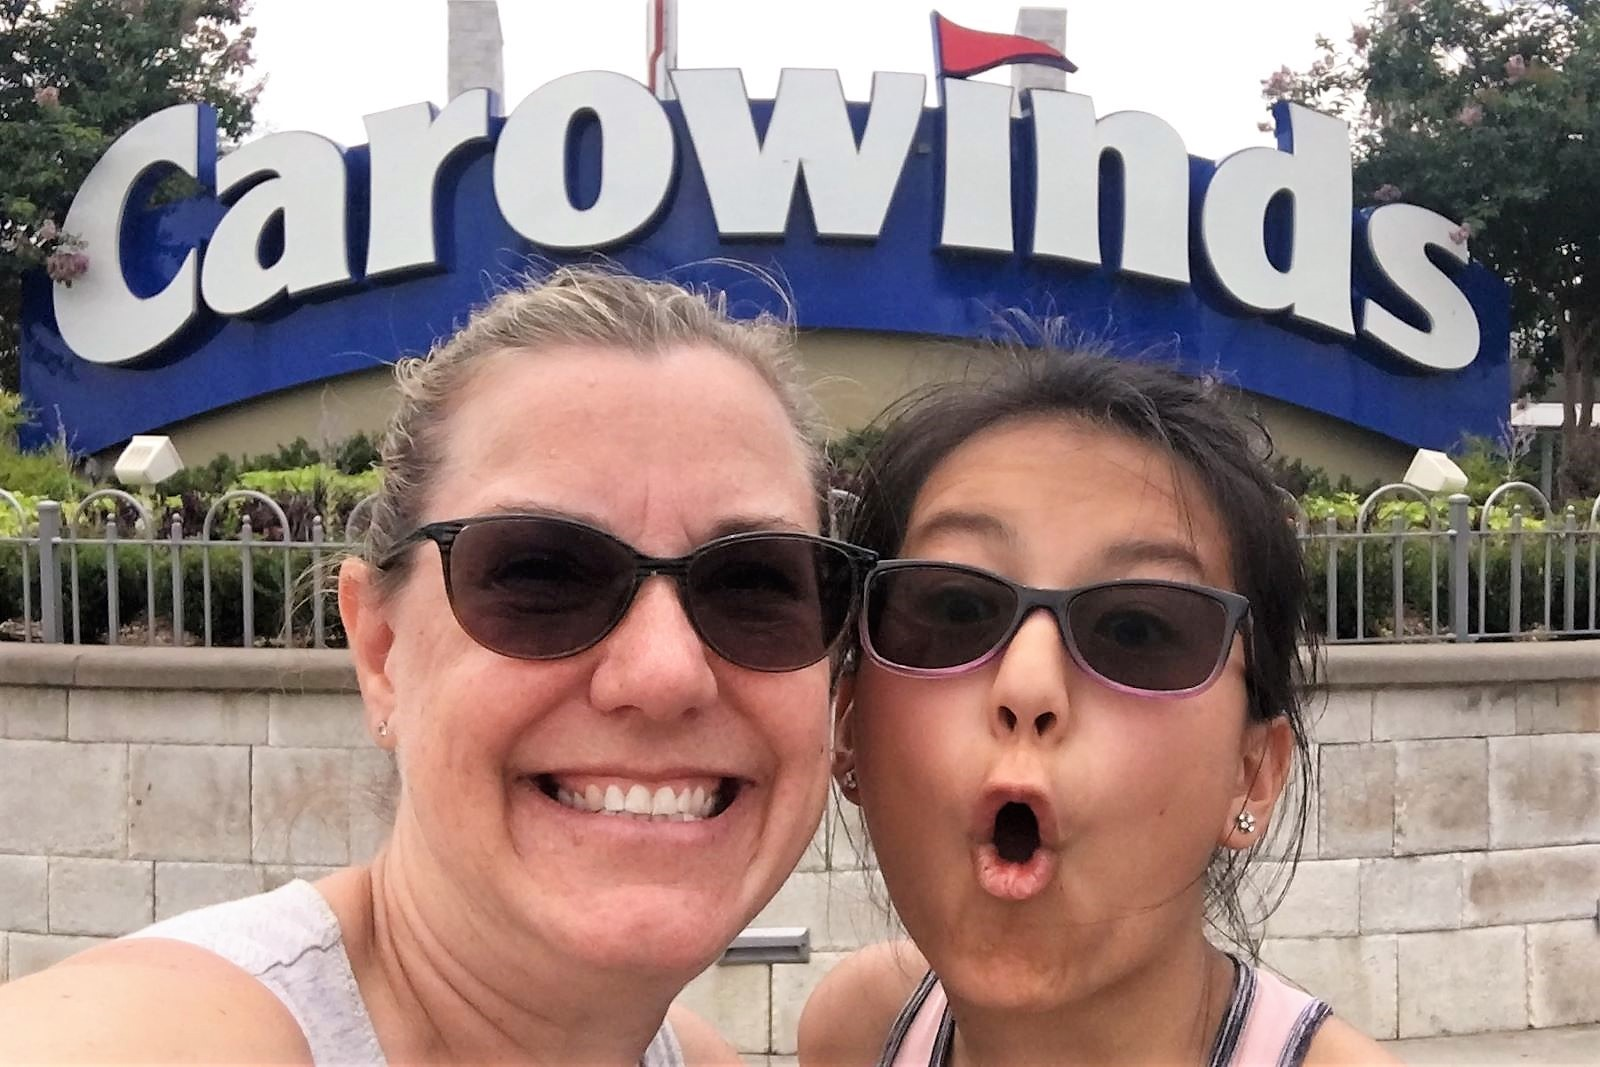 Ellie and me in front of the Carowinds sign